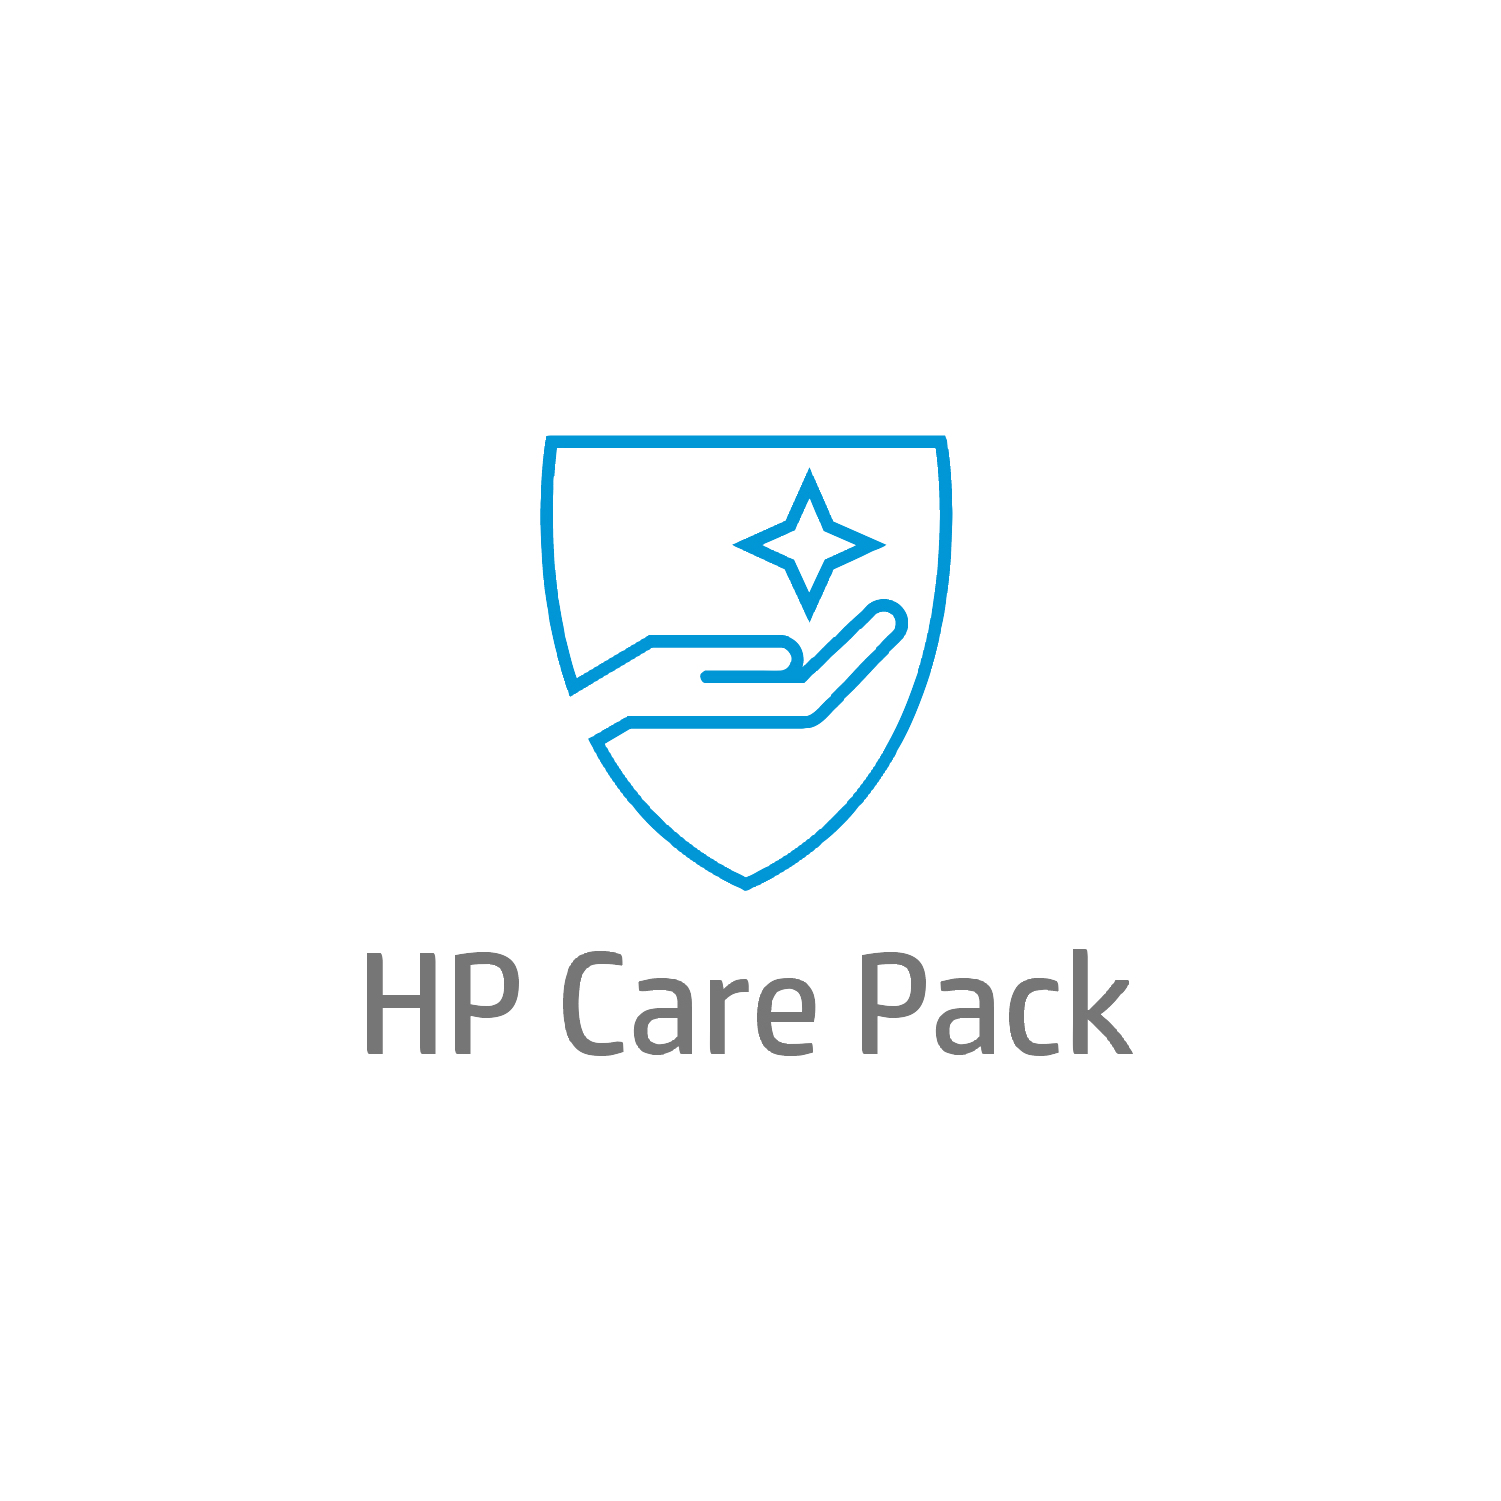 HP 2 years Absolute Control Service for 10000 to - 49999 Units volume